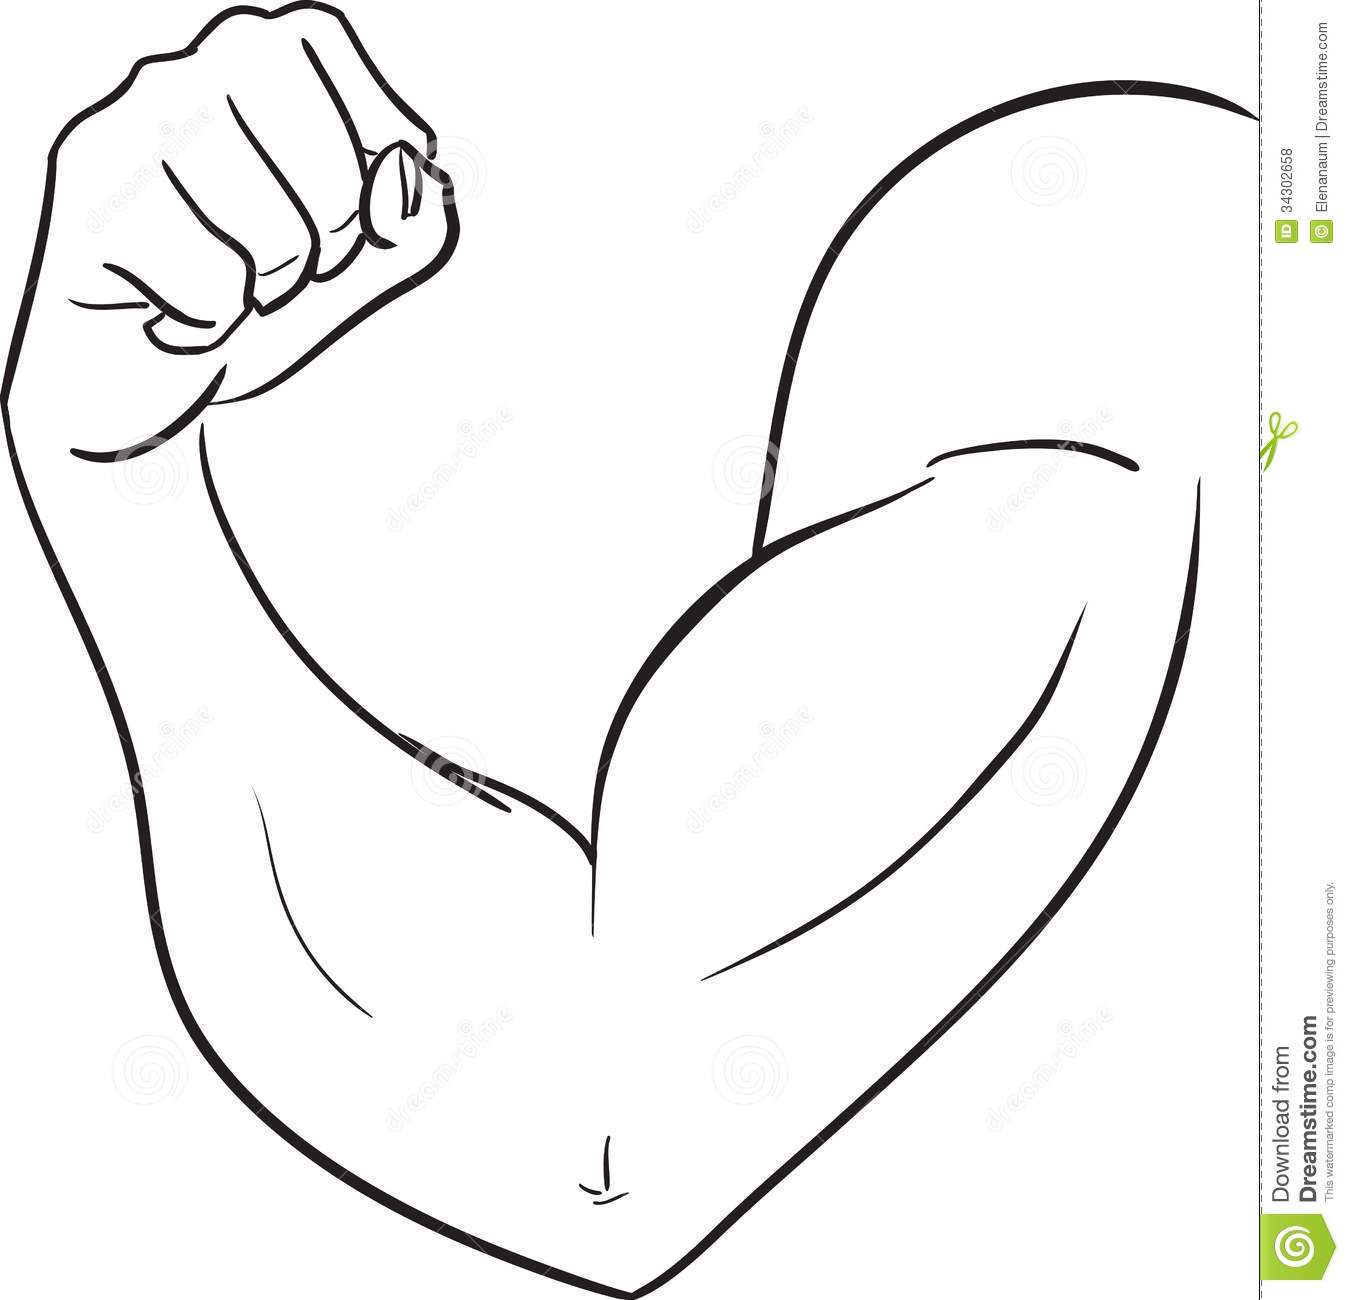 Arm muscles clipart - Clipground